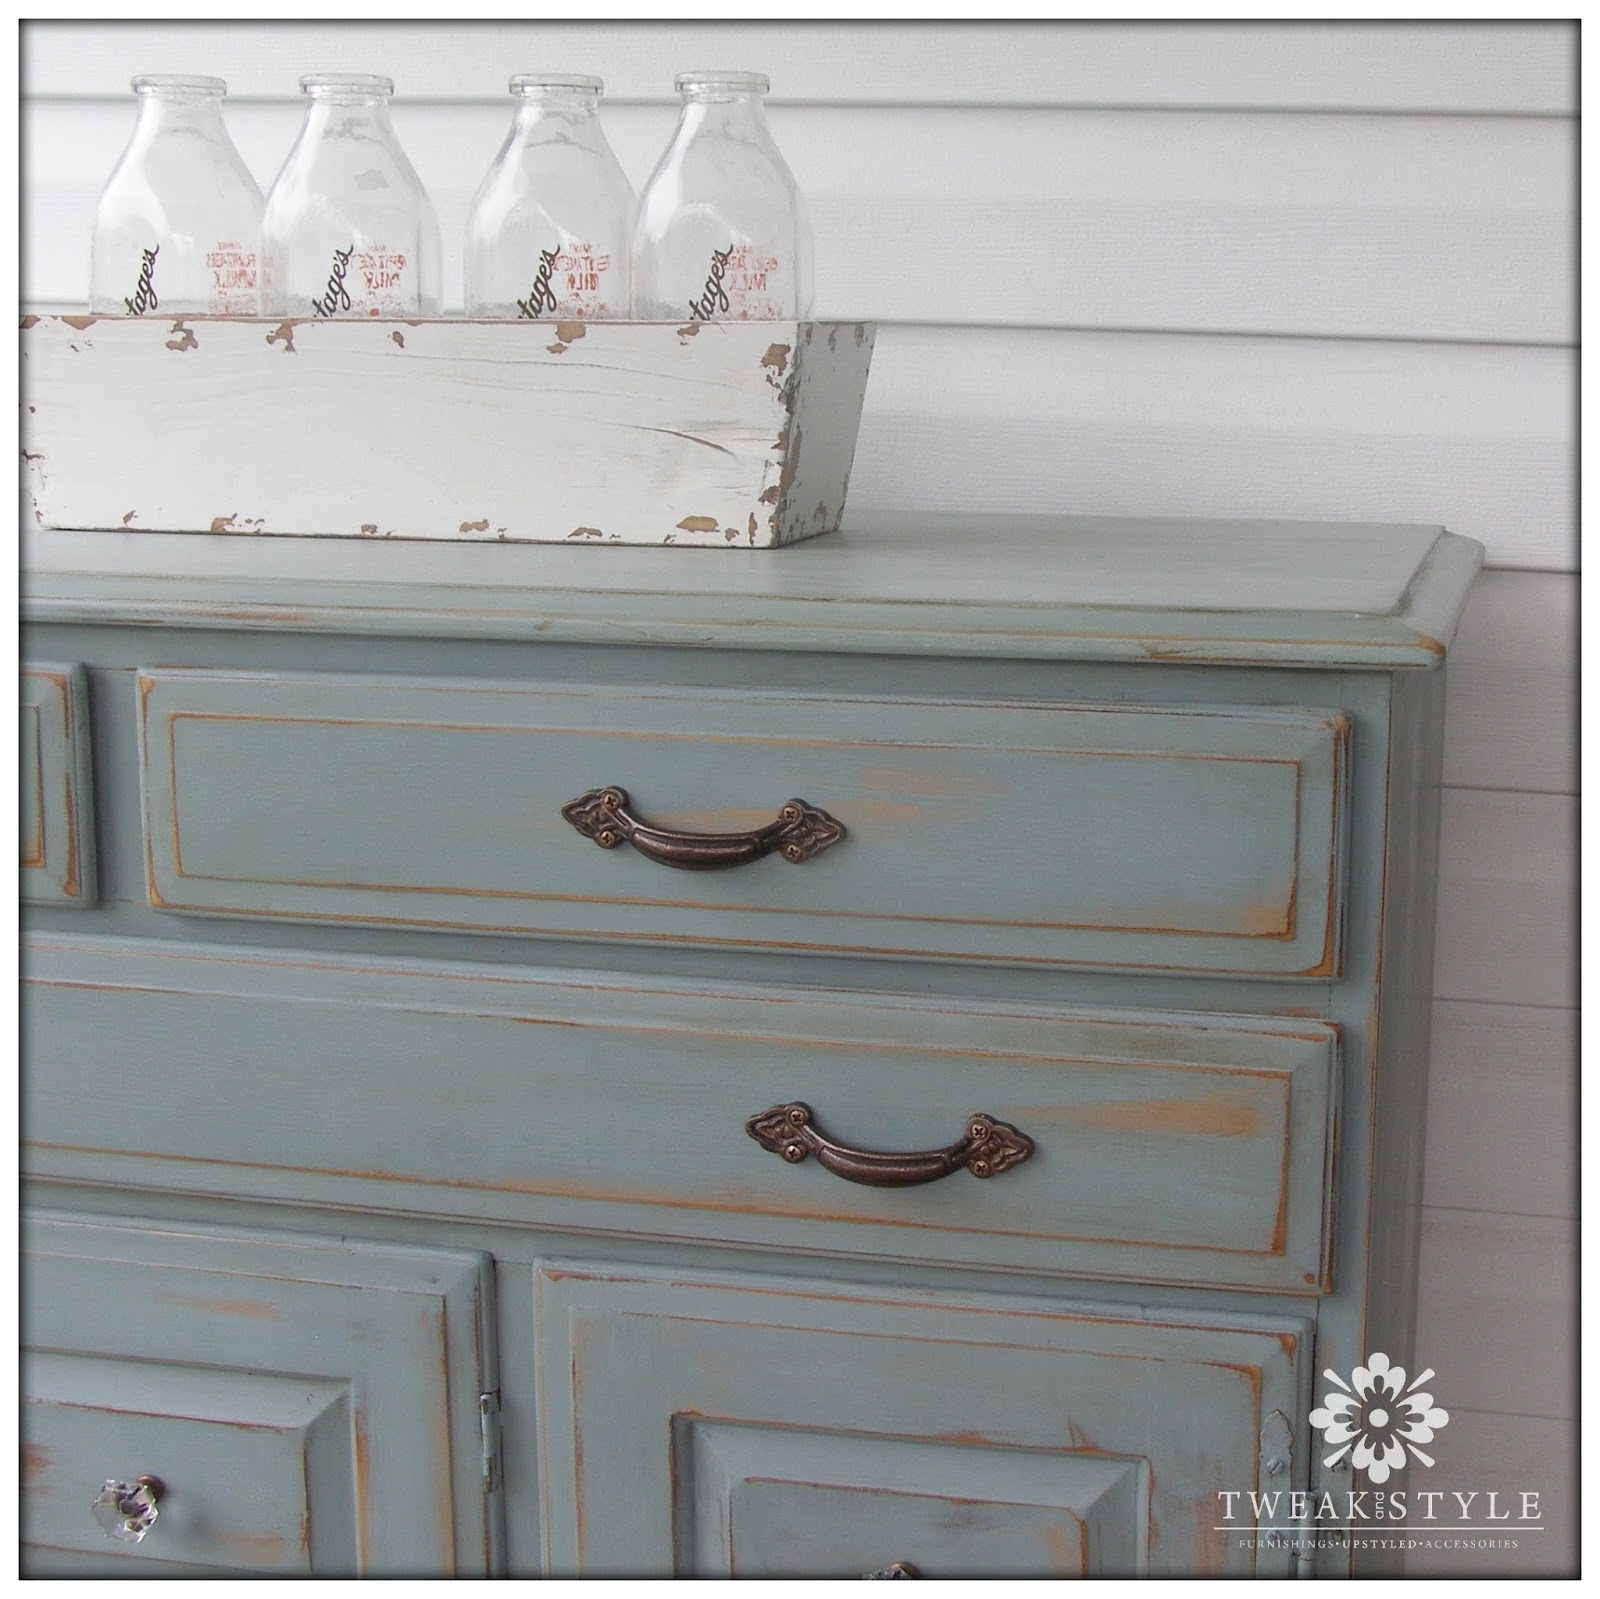 Tweak style blog two toned glam distressing with duck for How to paint furniture distressed